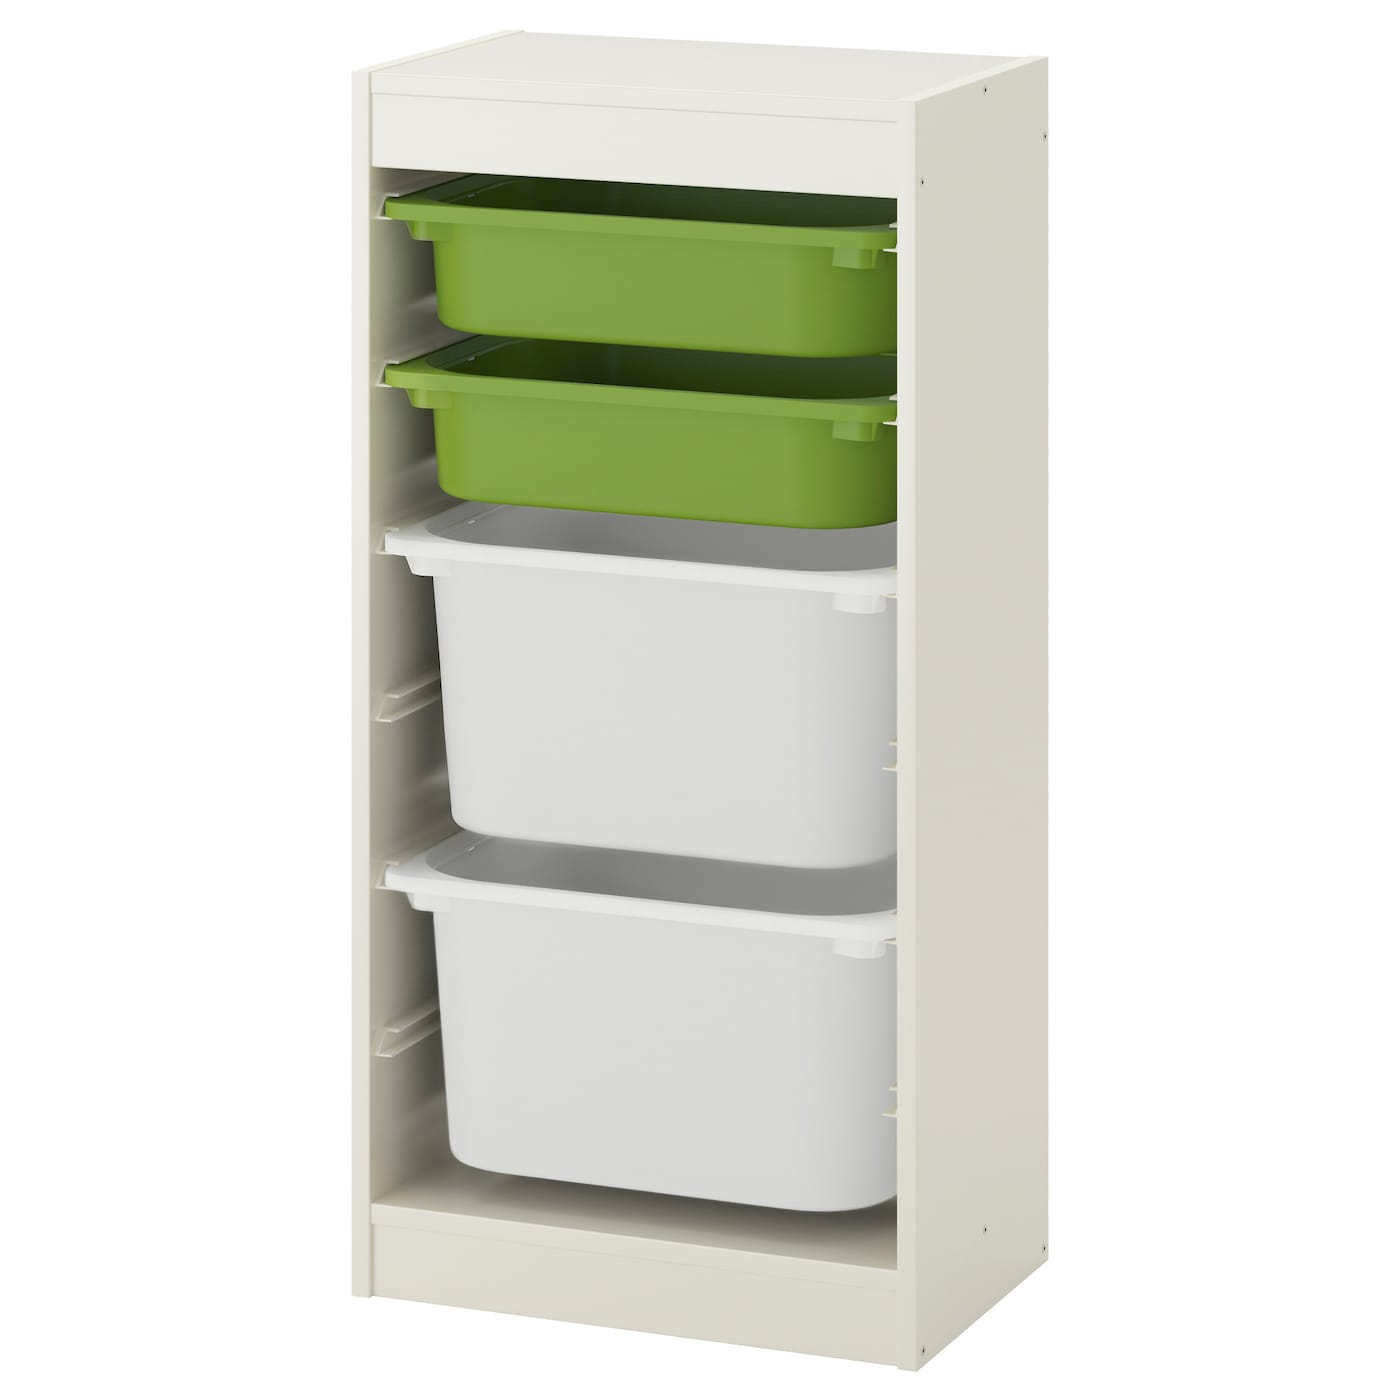 trofast storage combination with boxes white green white 46 x 30 x 94 cm ikea. Black Bedroom Furniture Sets. Home Design Ideas